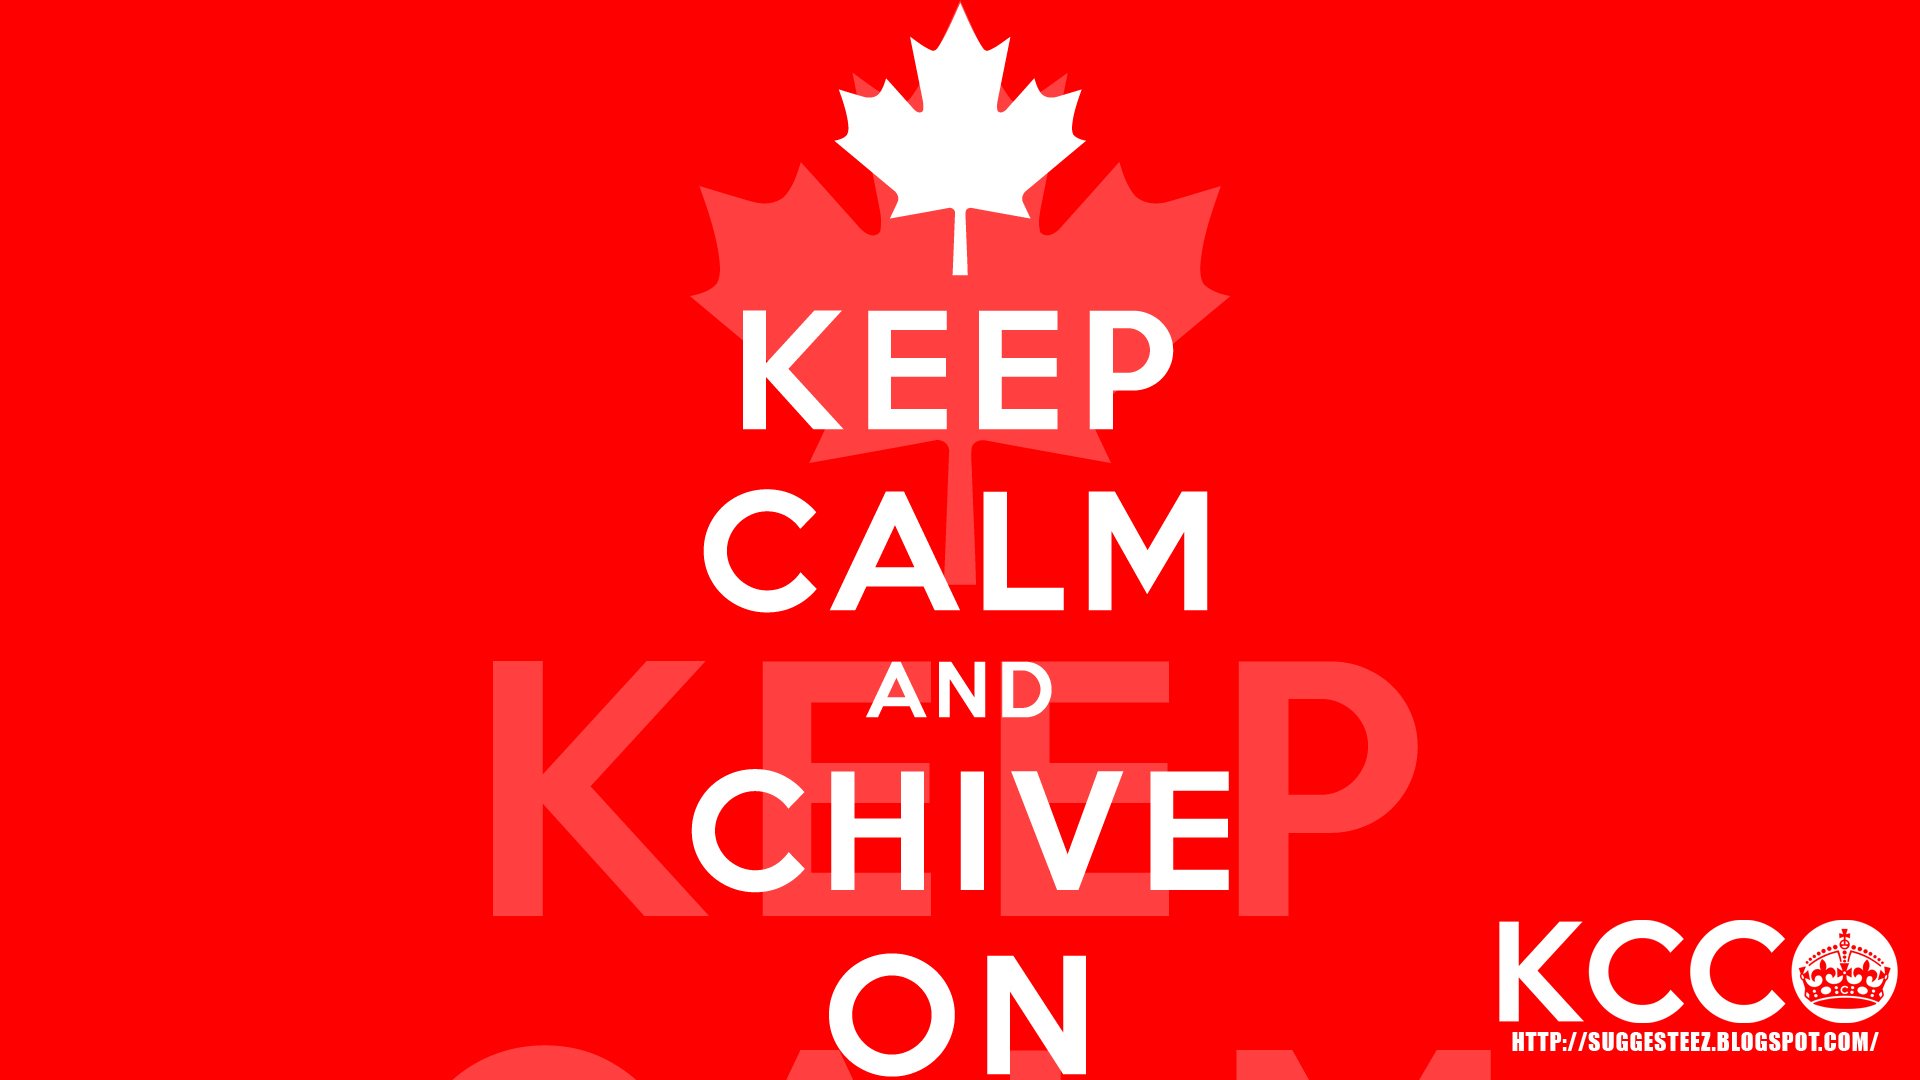 TheCHIVE Canadian KCCO HD Wallpaper By Suggesteez On